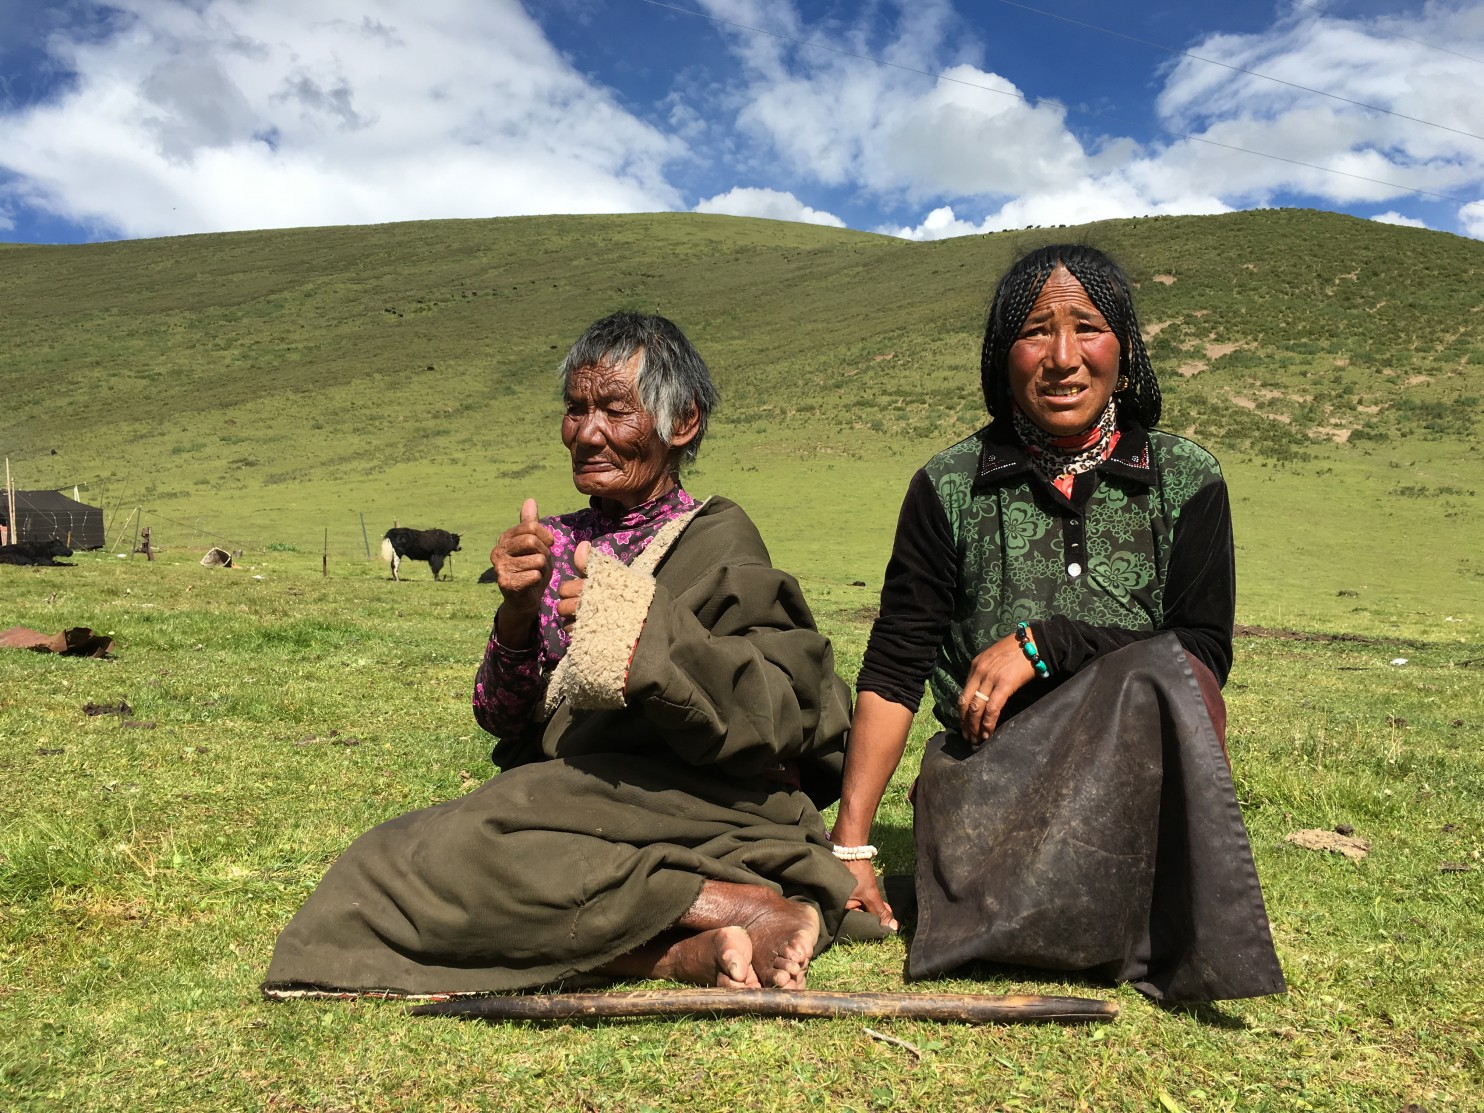 Tsering Tso's grandmother, Lhadhey, 83, and mother Adhey, 49, pose for a photograph in Jiqie No. 2 Village on the grasslands outside Chalong township in China's western Sichuan province. (Photo courtesy: Xu Yangjingjing/The Washington Post)